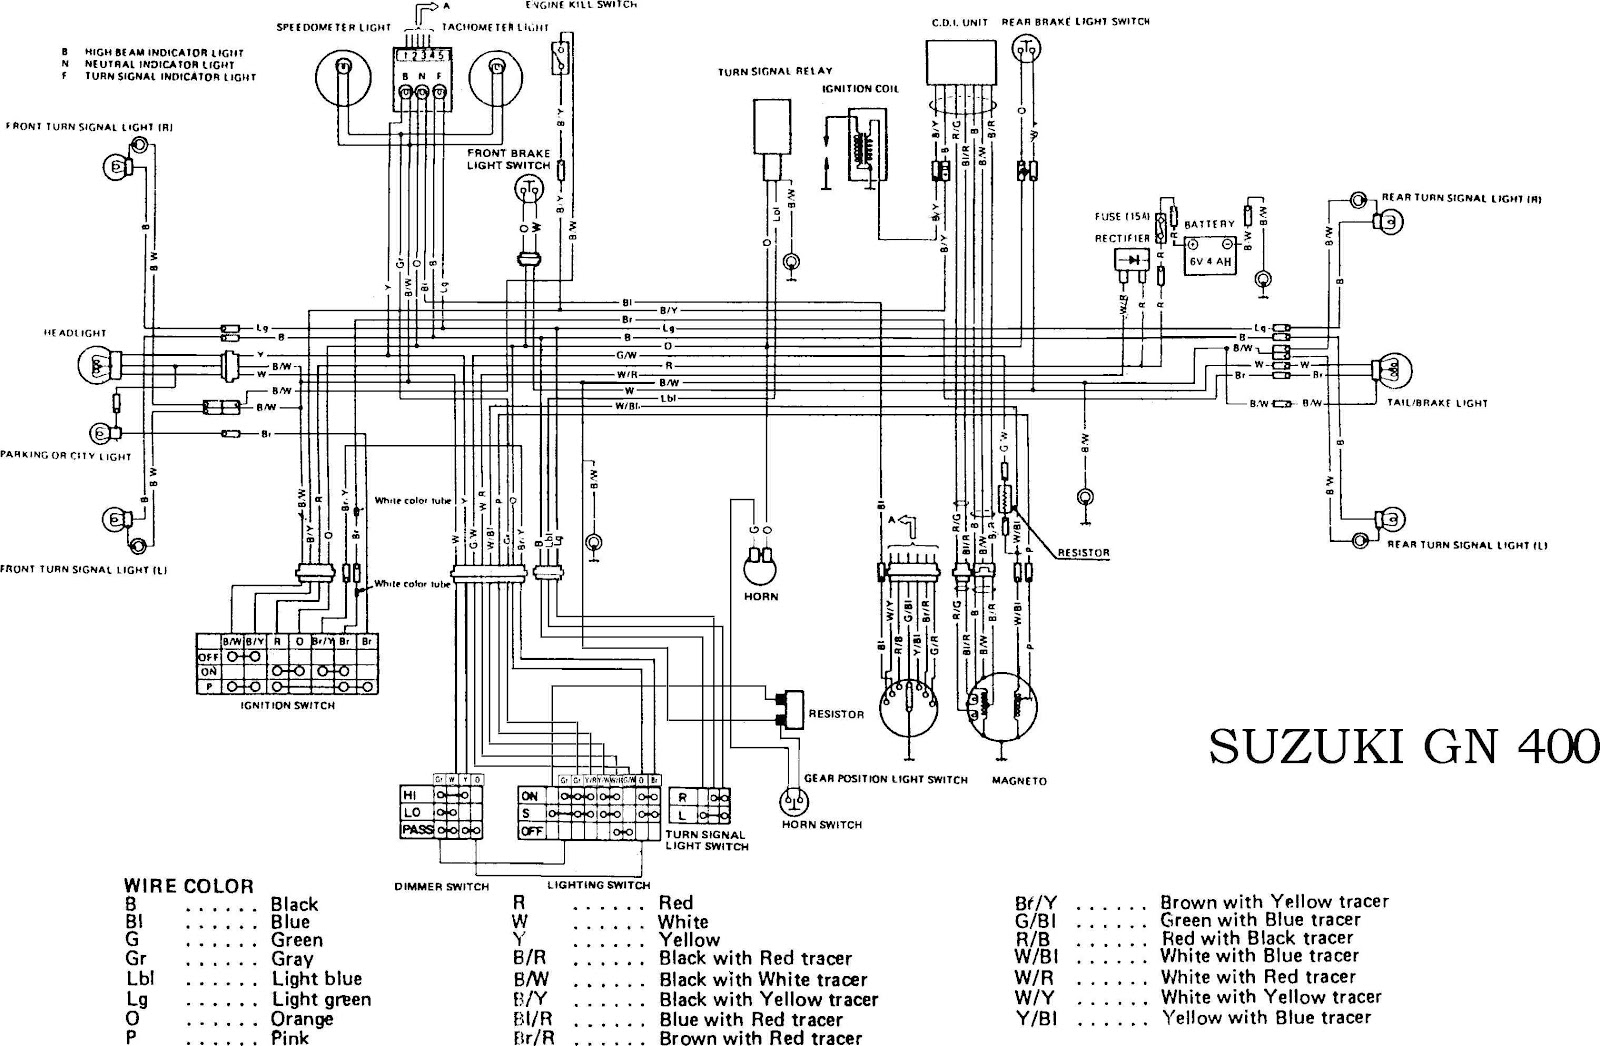 bmw radio wiring diagram with Suzuki Gsx R600 Srad Motorcycle 1998 on Nissan Frontier Cd Player Wiring Diagram further 93 Chevy S10 Blazer Wiring Diagram in addition Chevy Wiring Diagram Blower Not Working also 8 Pin Wire Harness moreover Wiring Diagram For A 2002 Honda Civic Free Download.